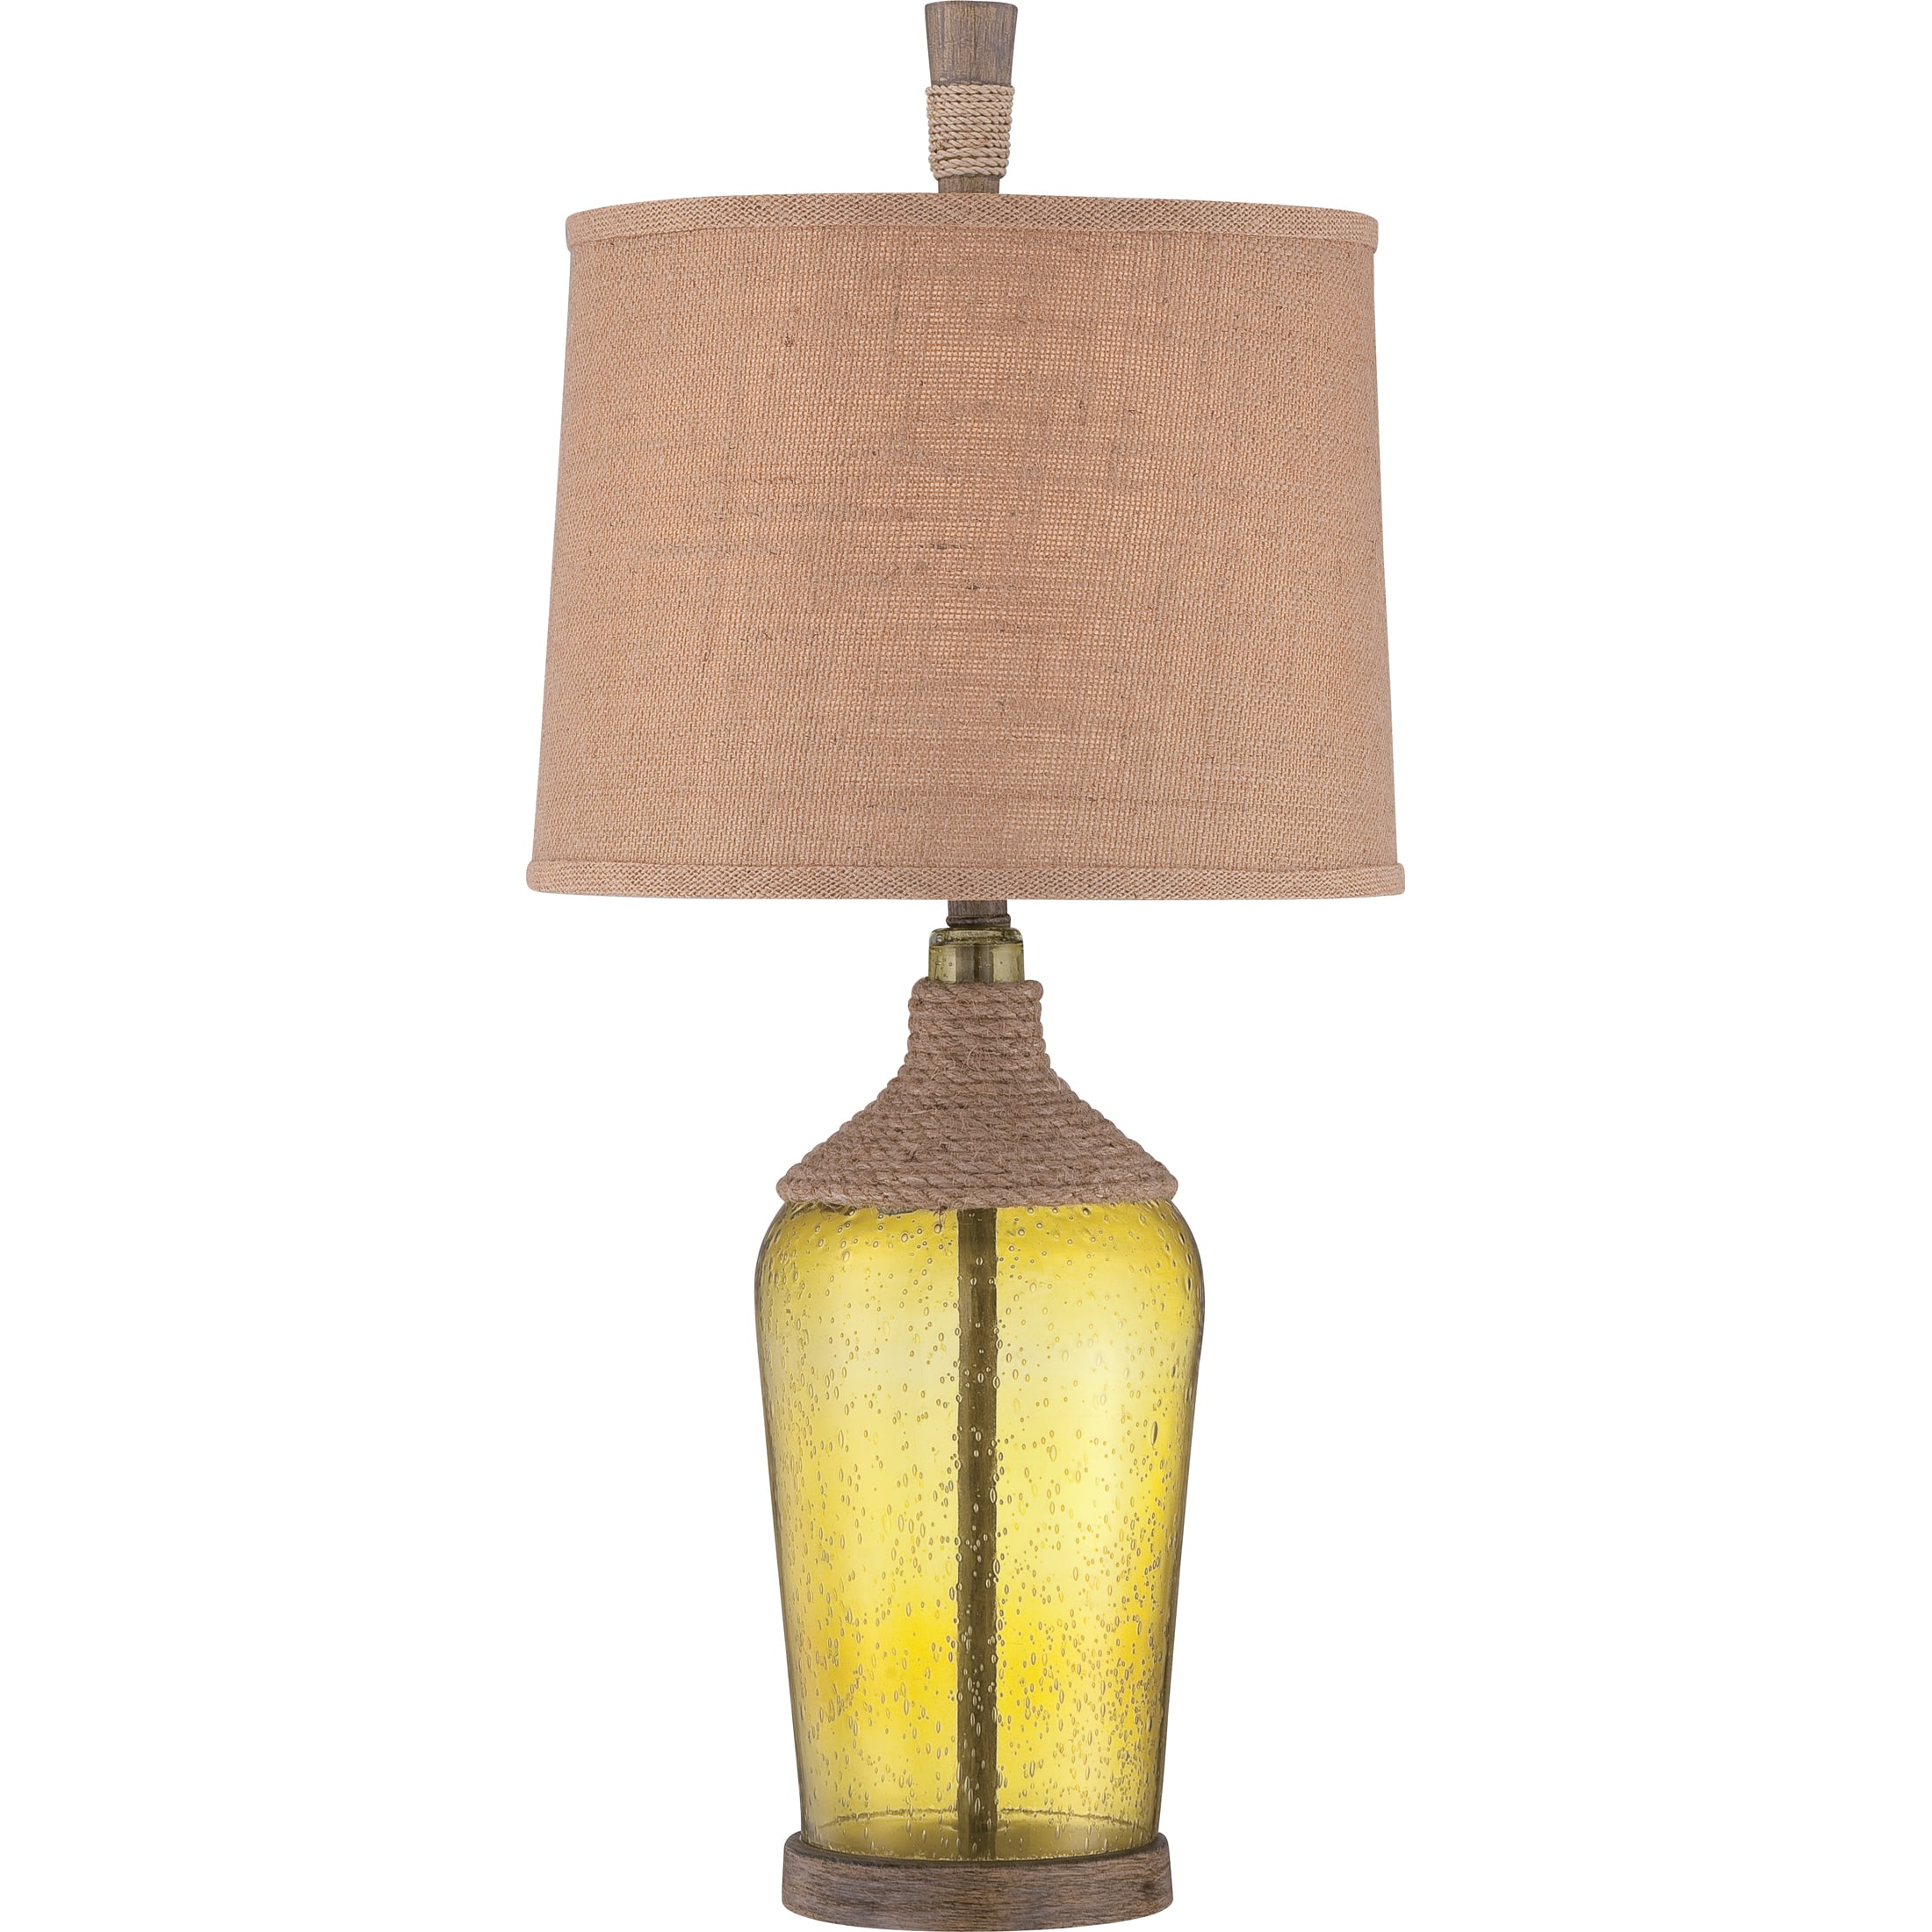 Quoizel Ckor1735t Seedy Glass Moors 1 Light 32 Tall Table Lamp With Burlap Softback Shade